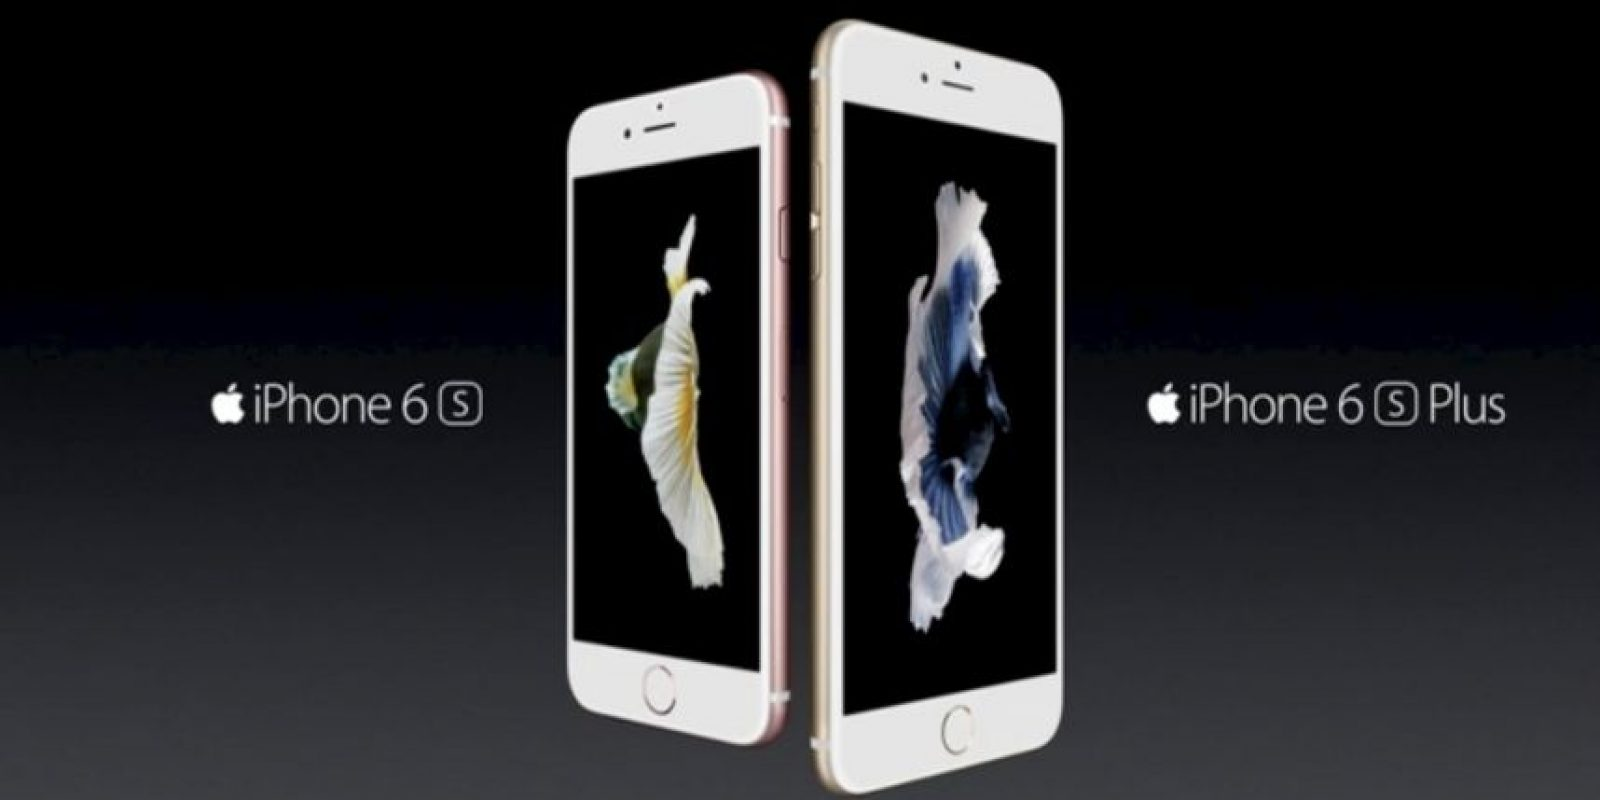 La pantalla del iPhone 6s es de 4.7 pulgadas por las 5.5 pulgadas del iPhone 6s Plus. Foto: Apple